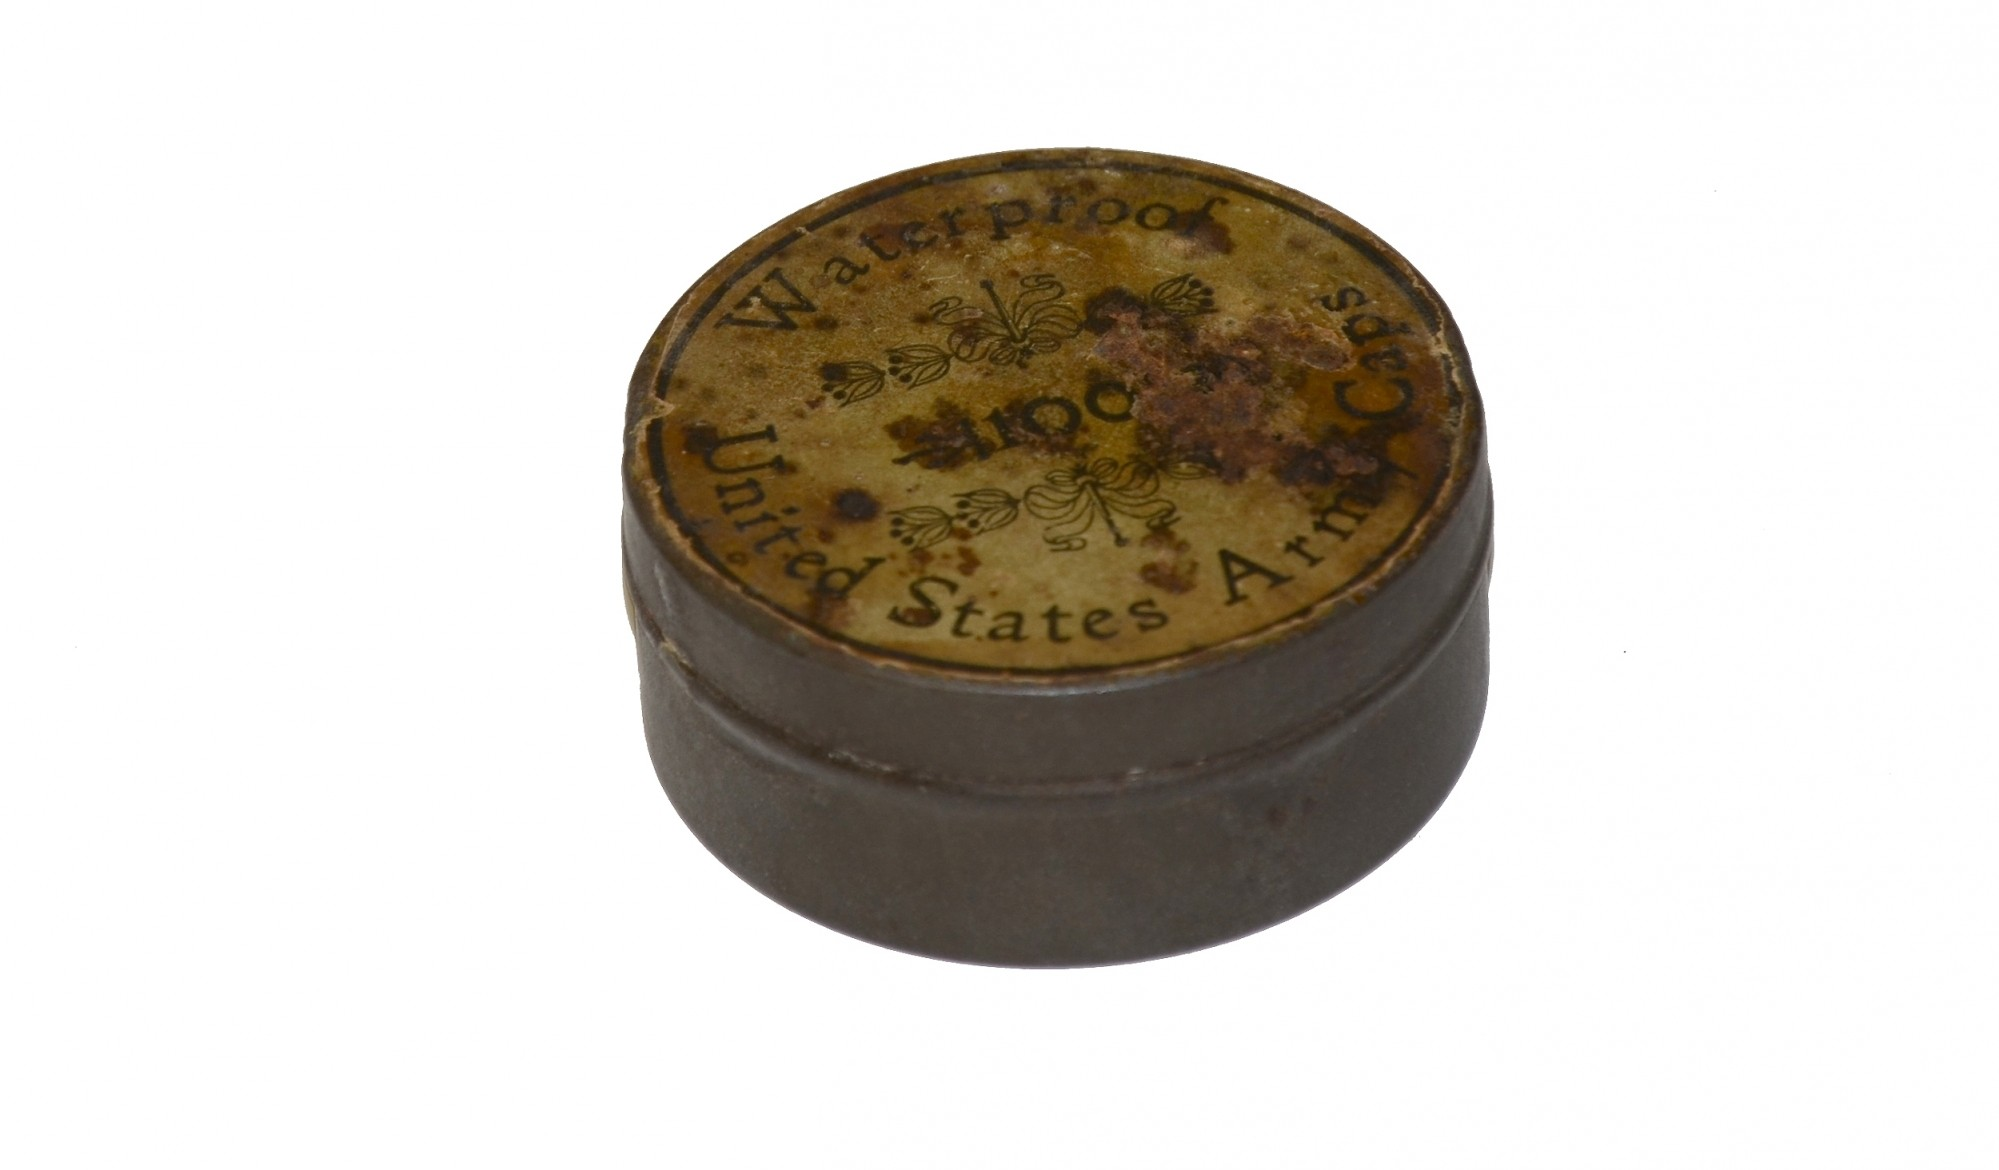 TIN OF PERCUSSION CAPS